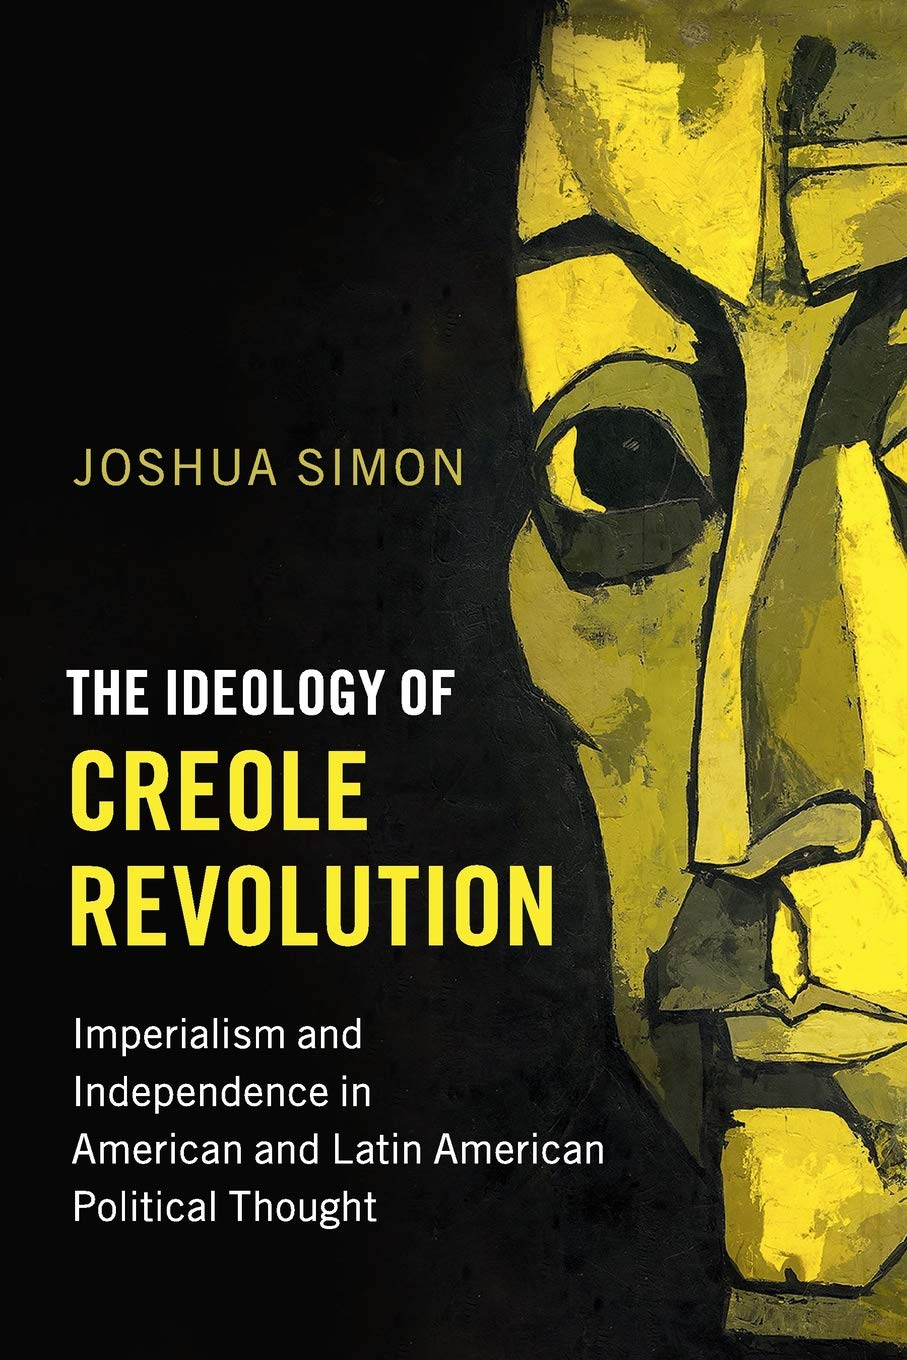 The Ideology of Creole Revolution: Imperialism and ... on latin american doctor, latin american ladies, latin american soap opera, latin american neighborhood, latin american classroom, latin american supermarket, latin american antiques, latin american holidays, latin american craft projects, latin american school, latin american accessories, latin american community center, latin american living room, latin american church, latin american bath, latin american gifts, latin american balcony, latin american souvenirs, latin american home, latin american water,